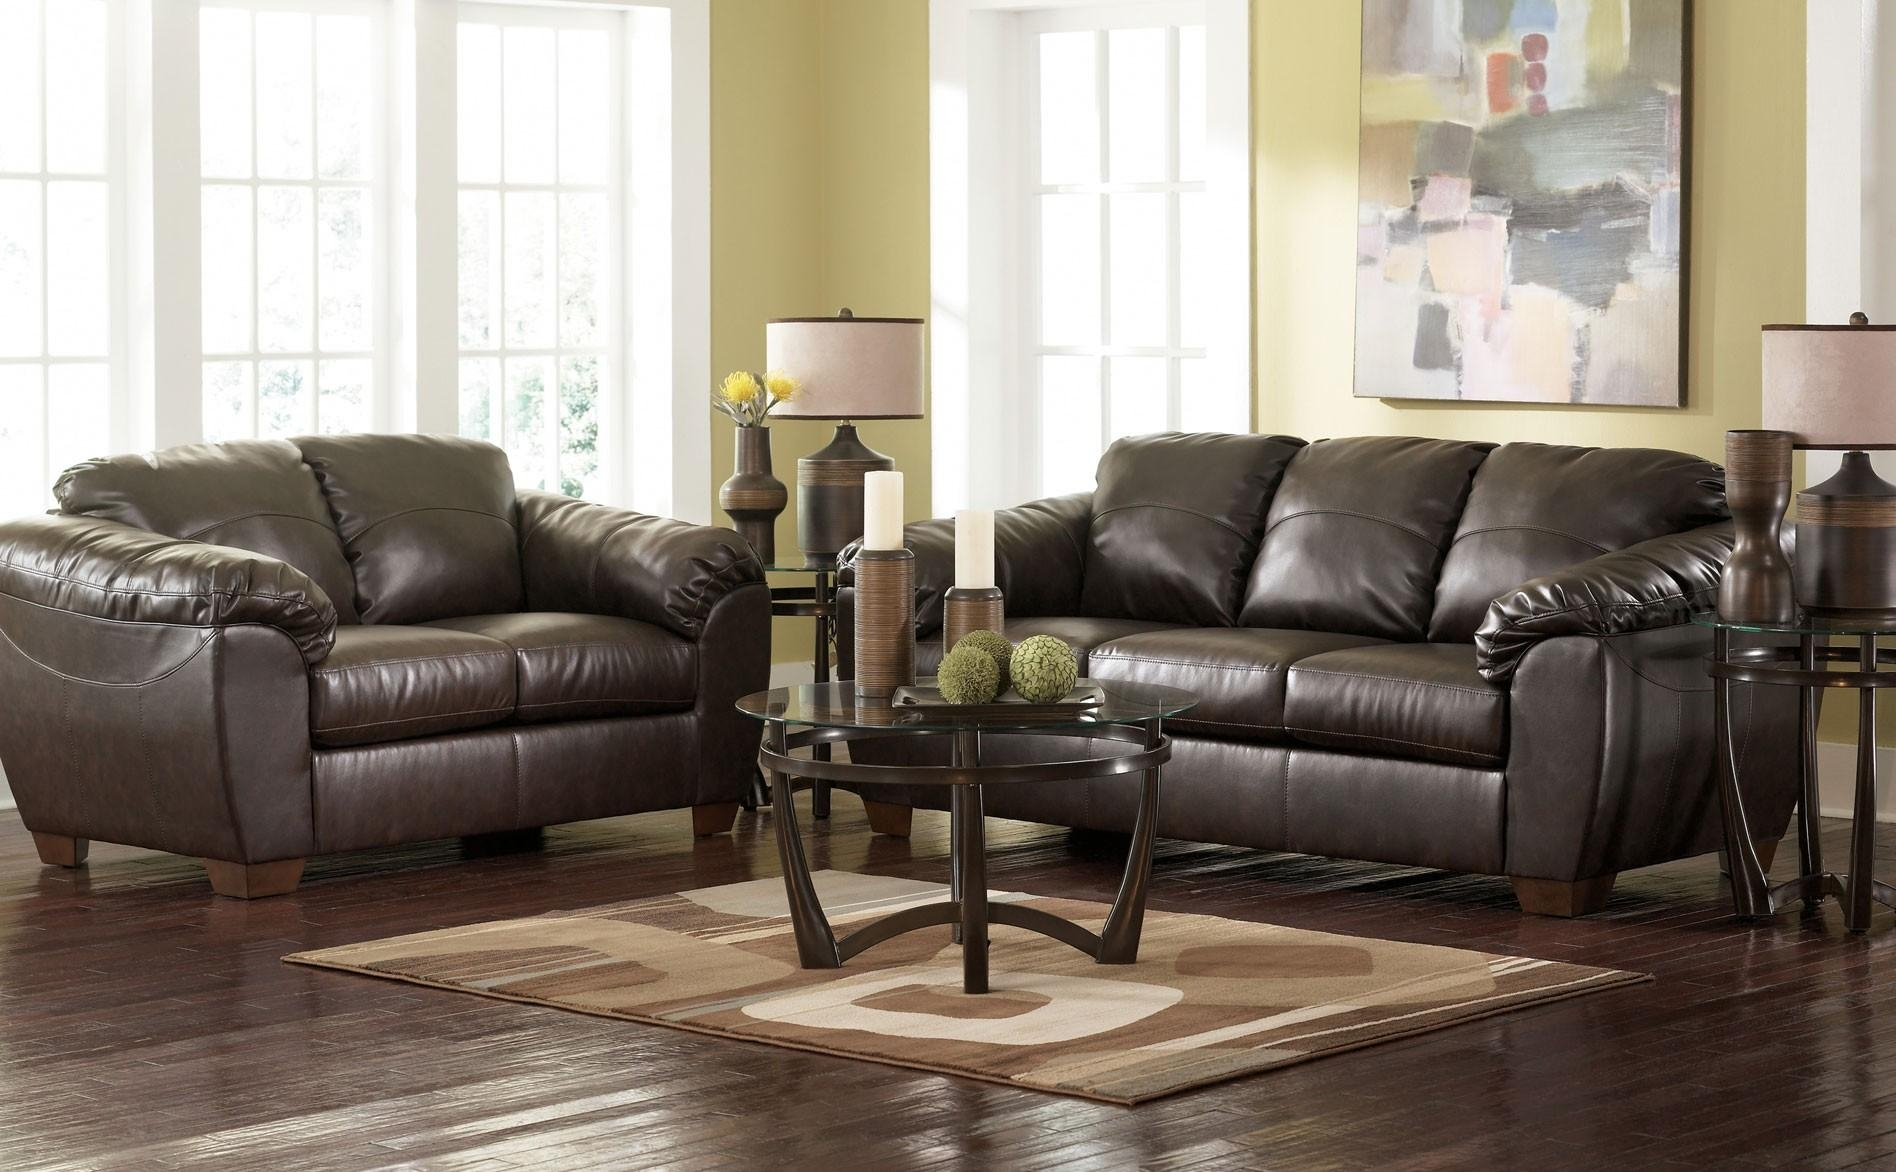 cheap leather sofa sets toronto beige sofas living room ideas 20 collection of ashley faux sectional